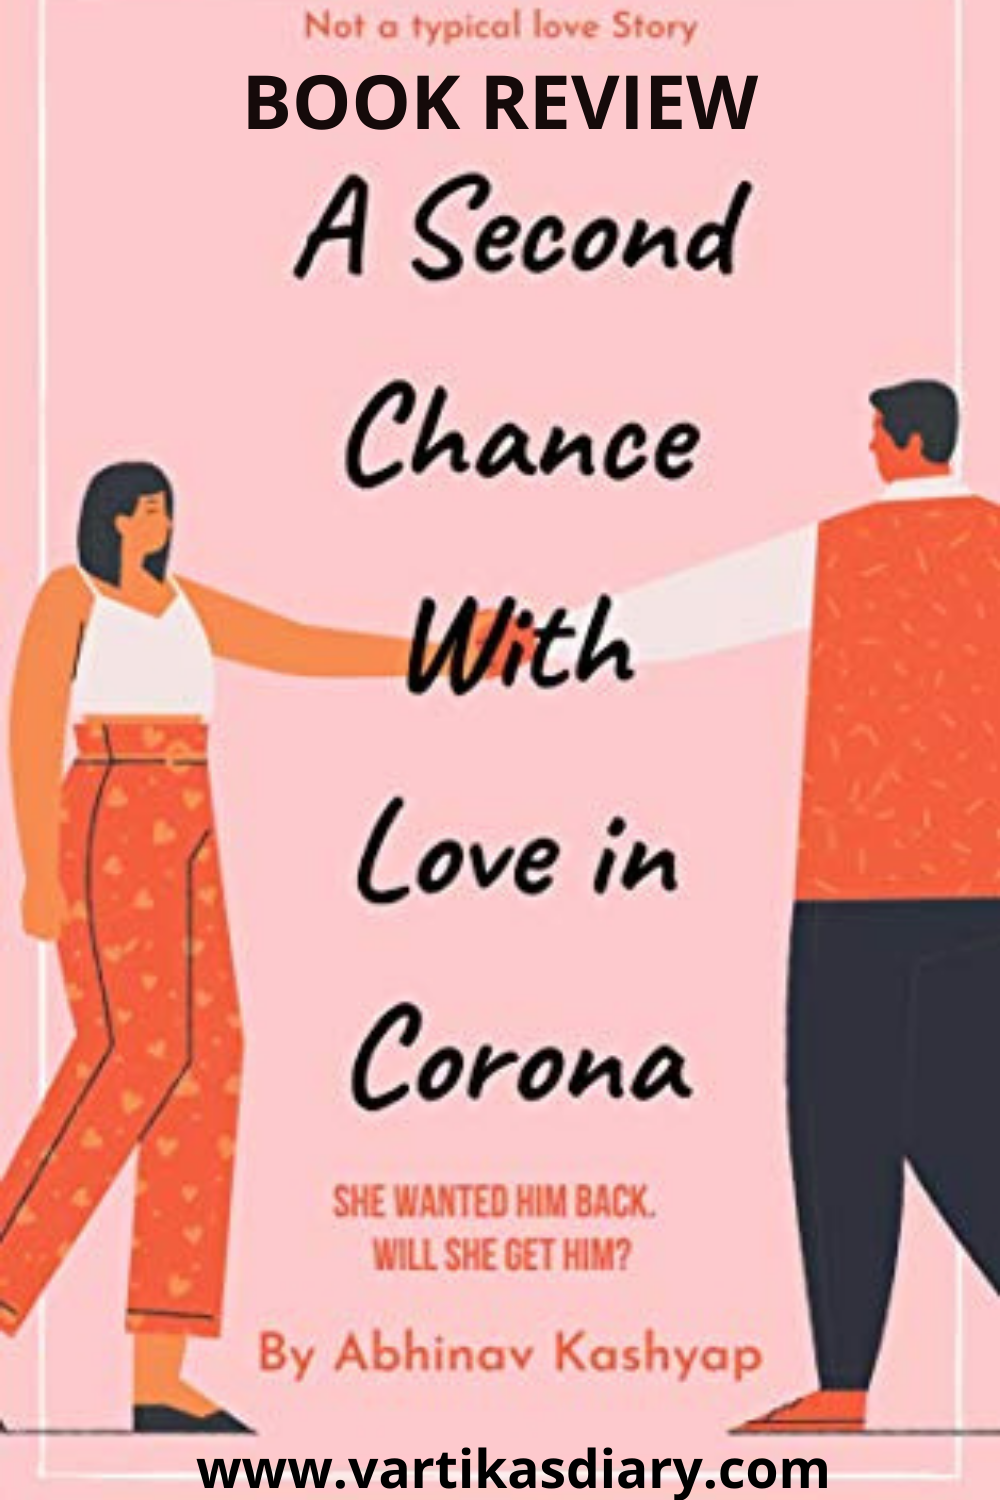 Book Review - A Second Chance With Love In Corona by Abhinav Kashyap